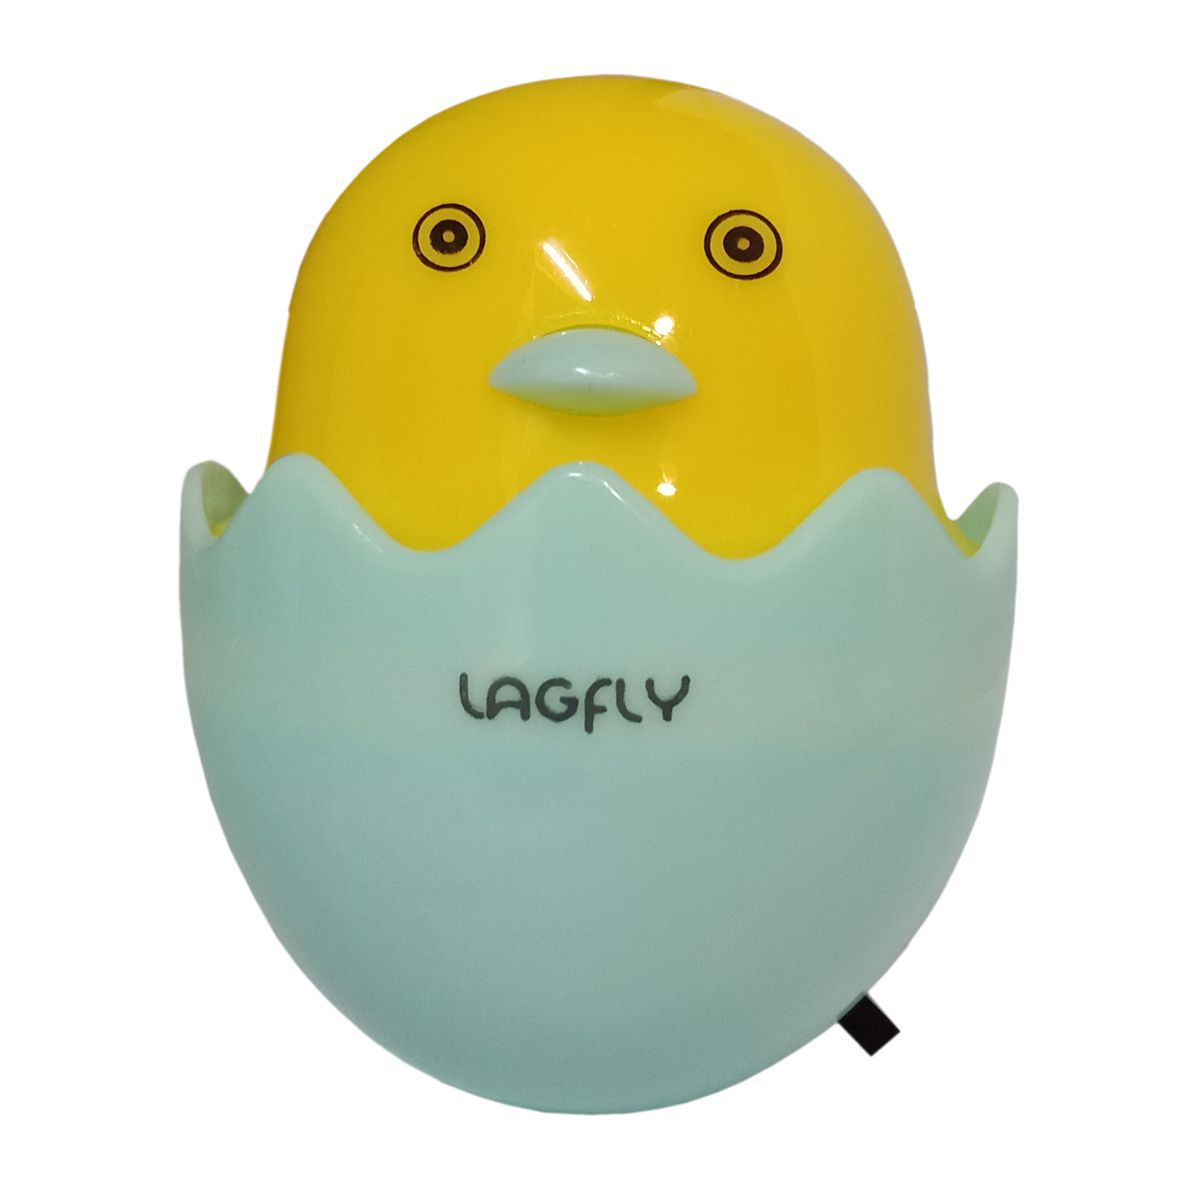 lagfly Night Lamp Yellow - Pack of 1